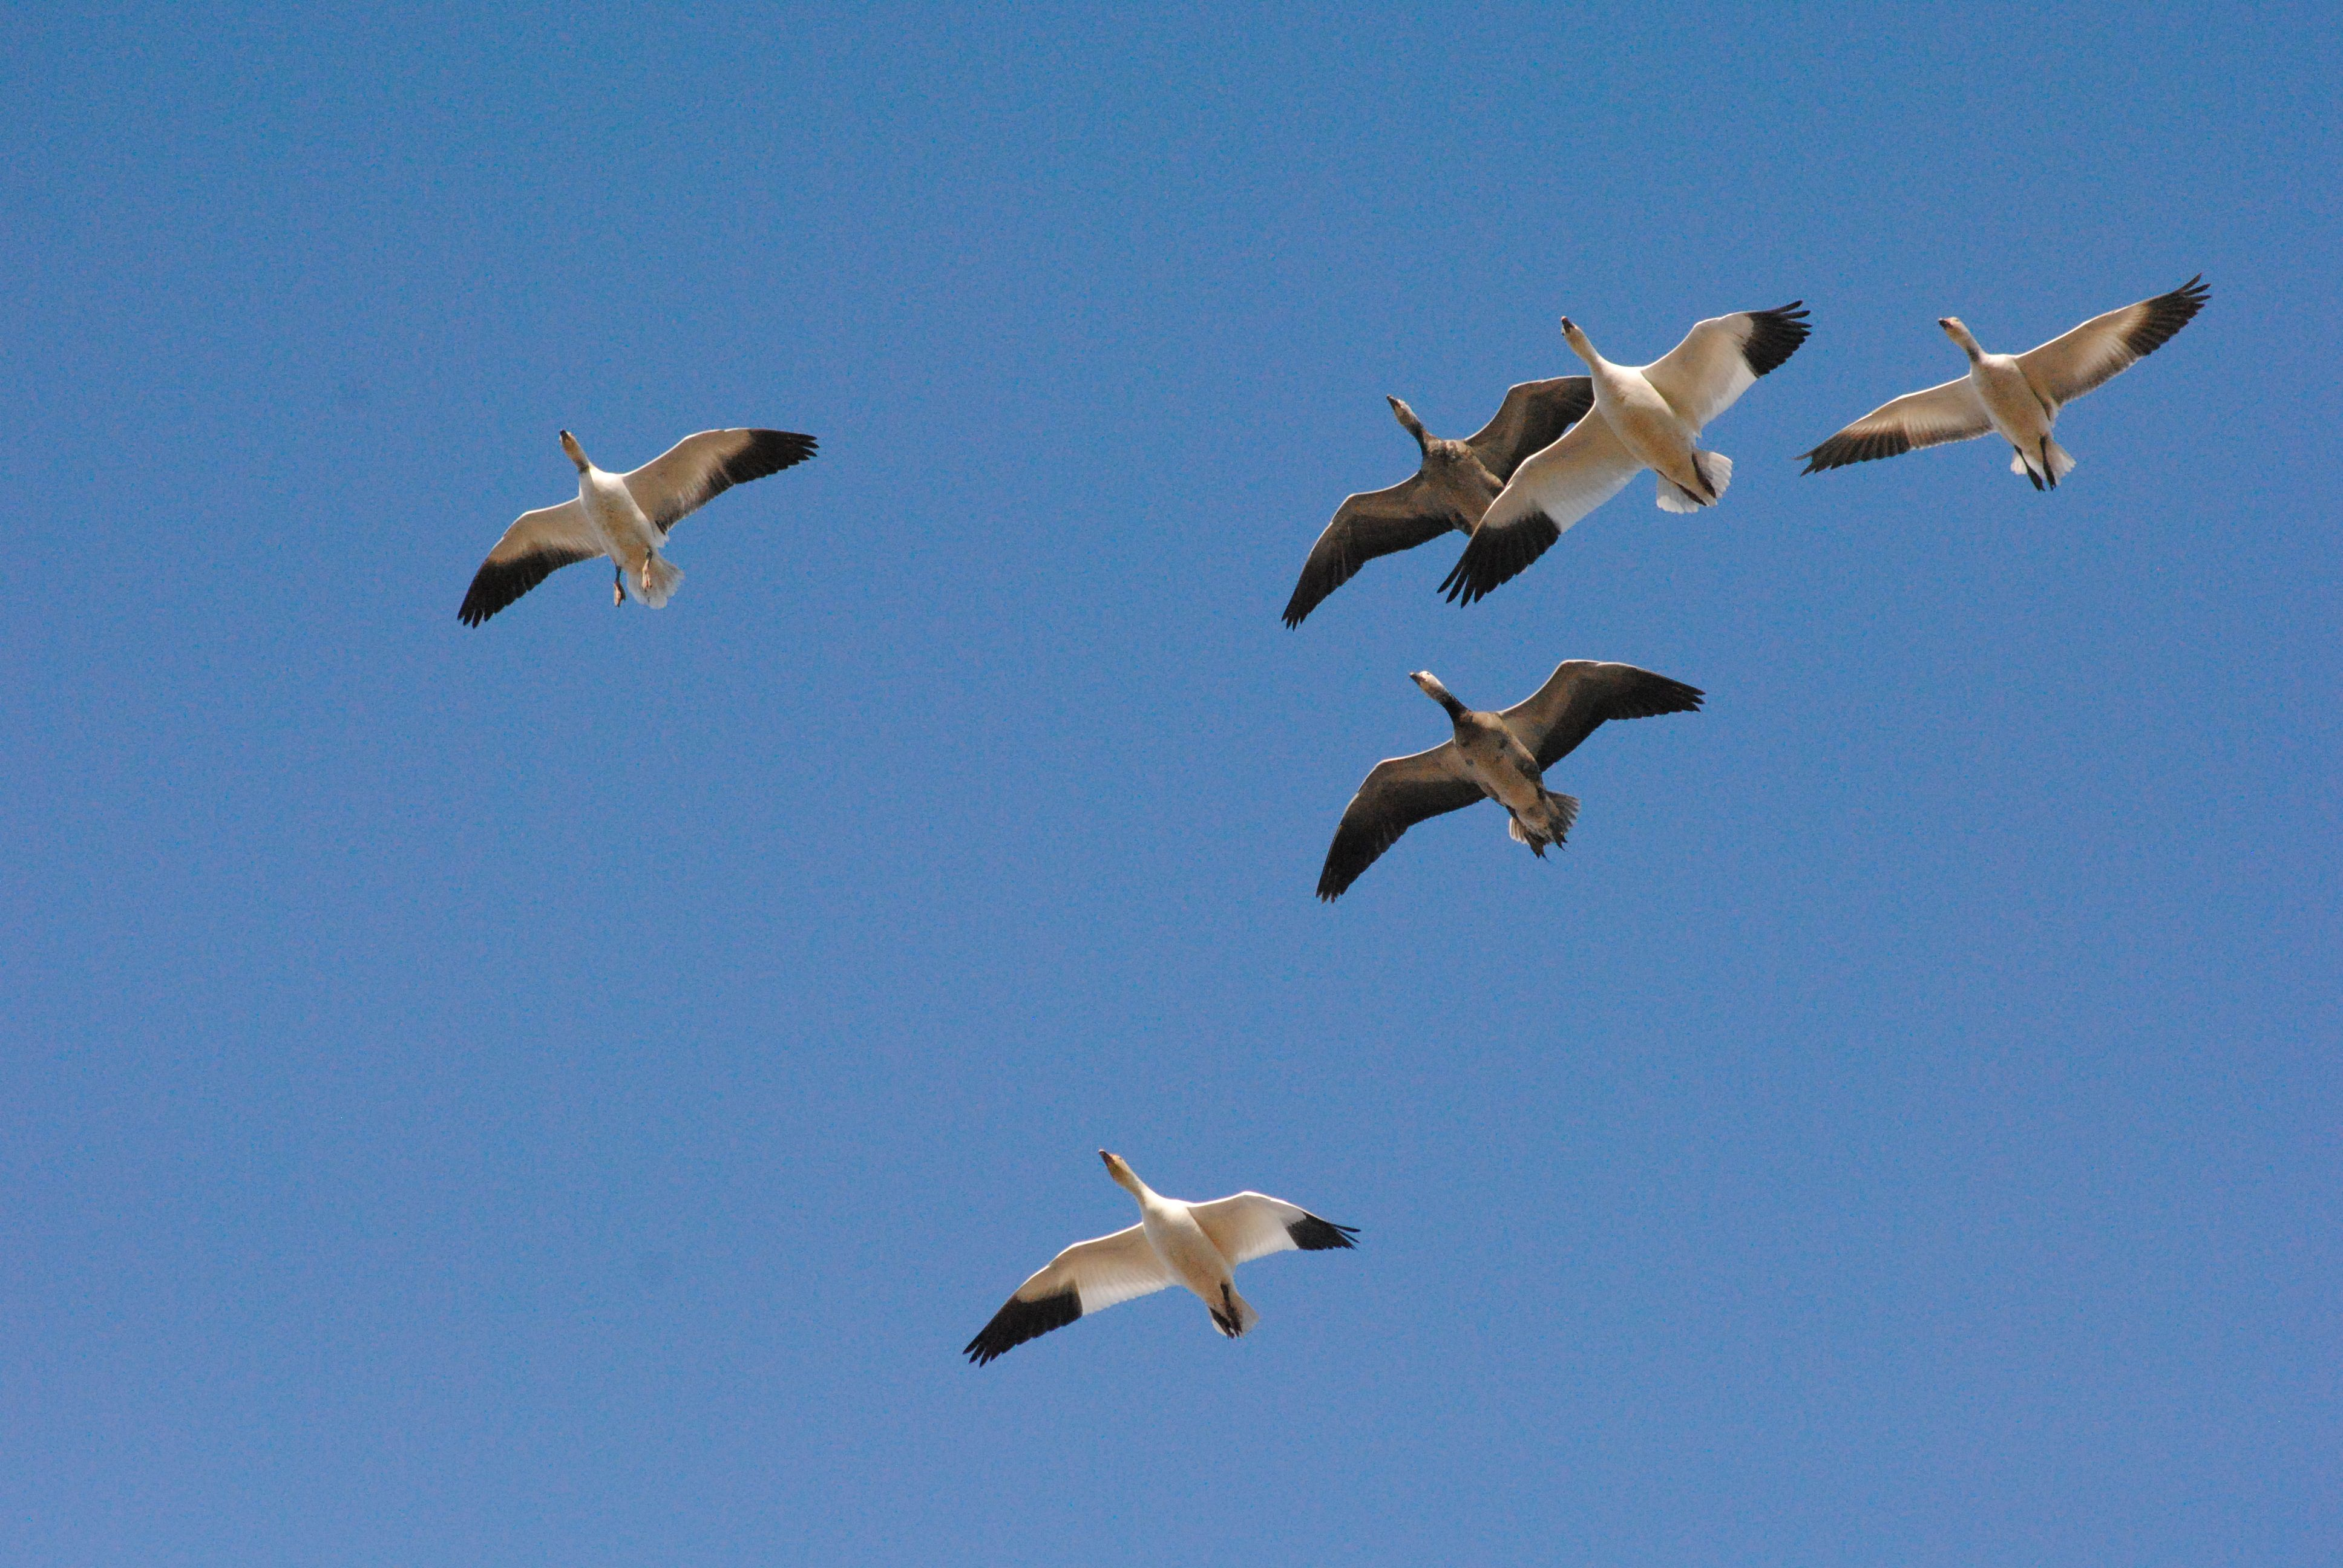 Missouri Snow Geese With Images Snow Goose Snow Goose Hunting